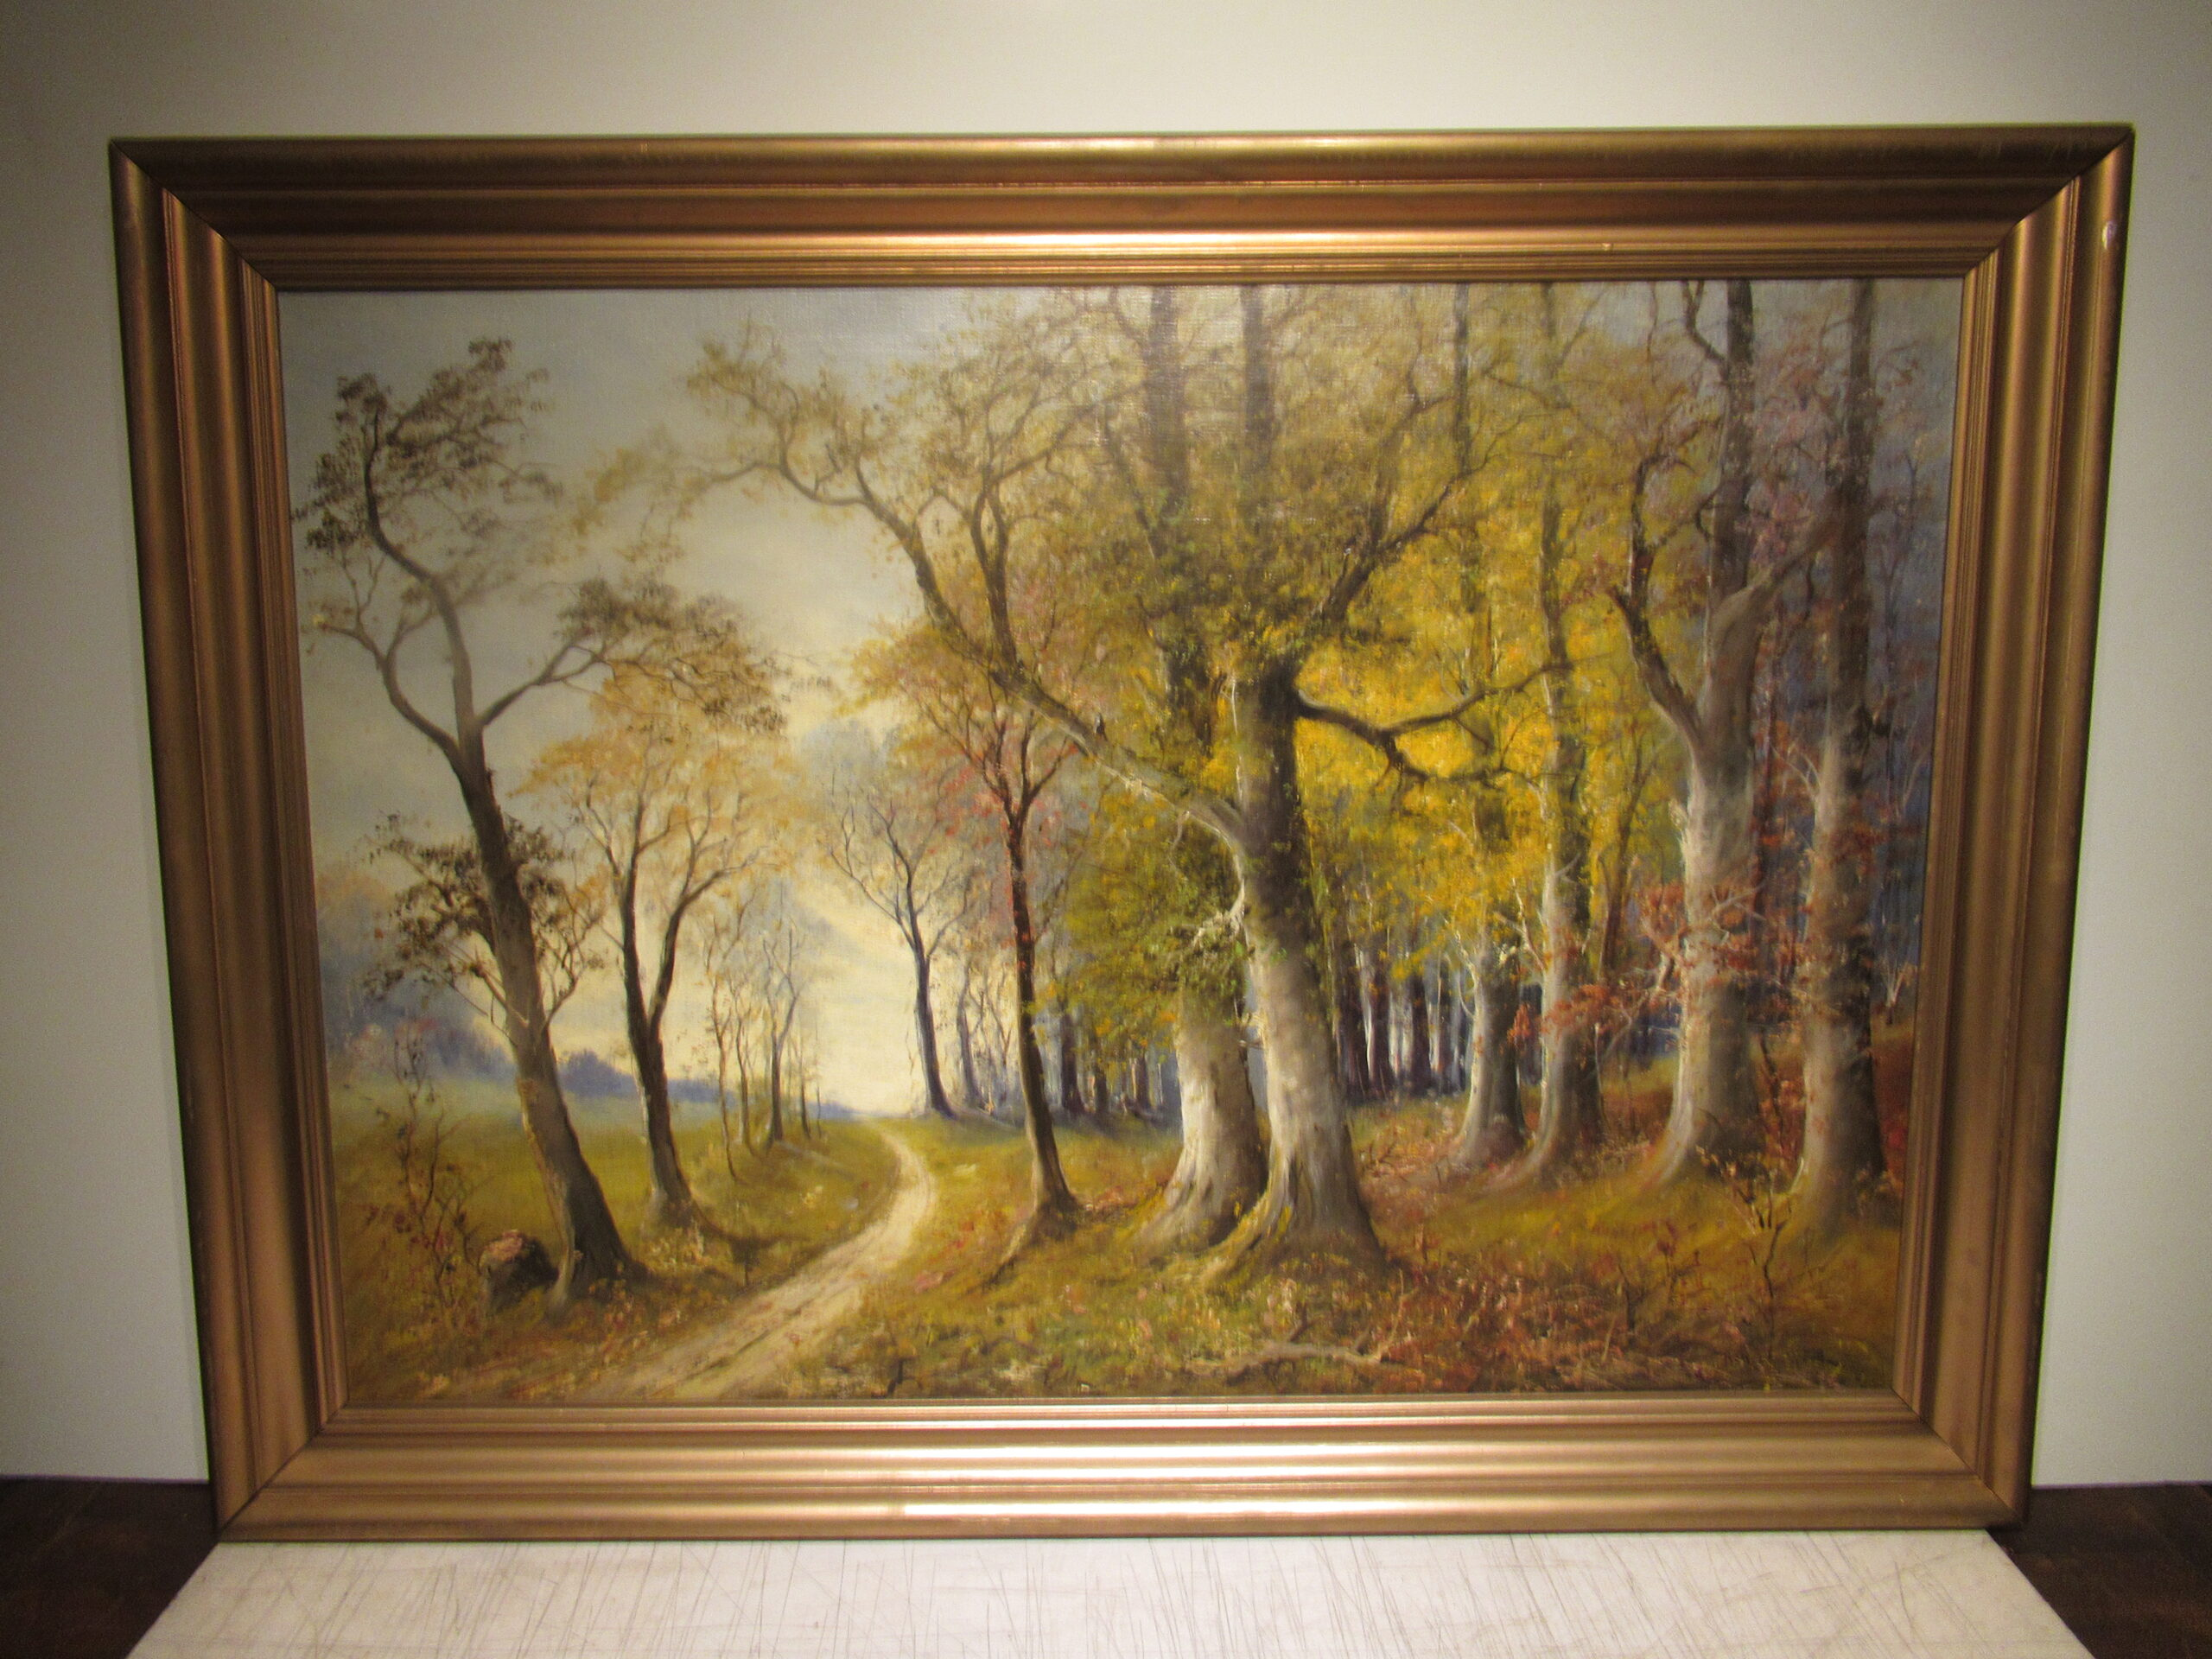 28×40 Robert Wood 1950 The Thicket Oil Painting